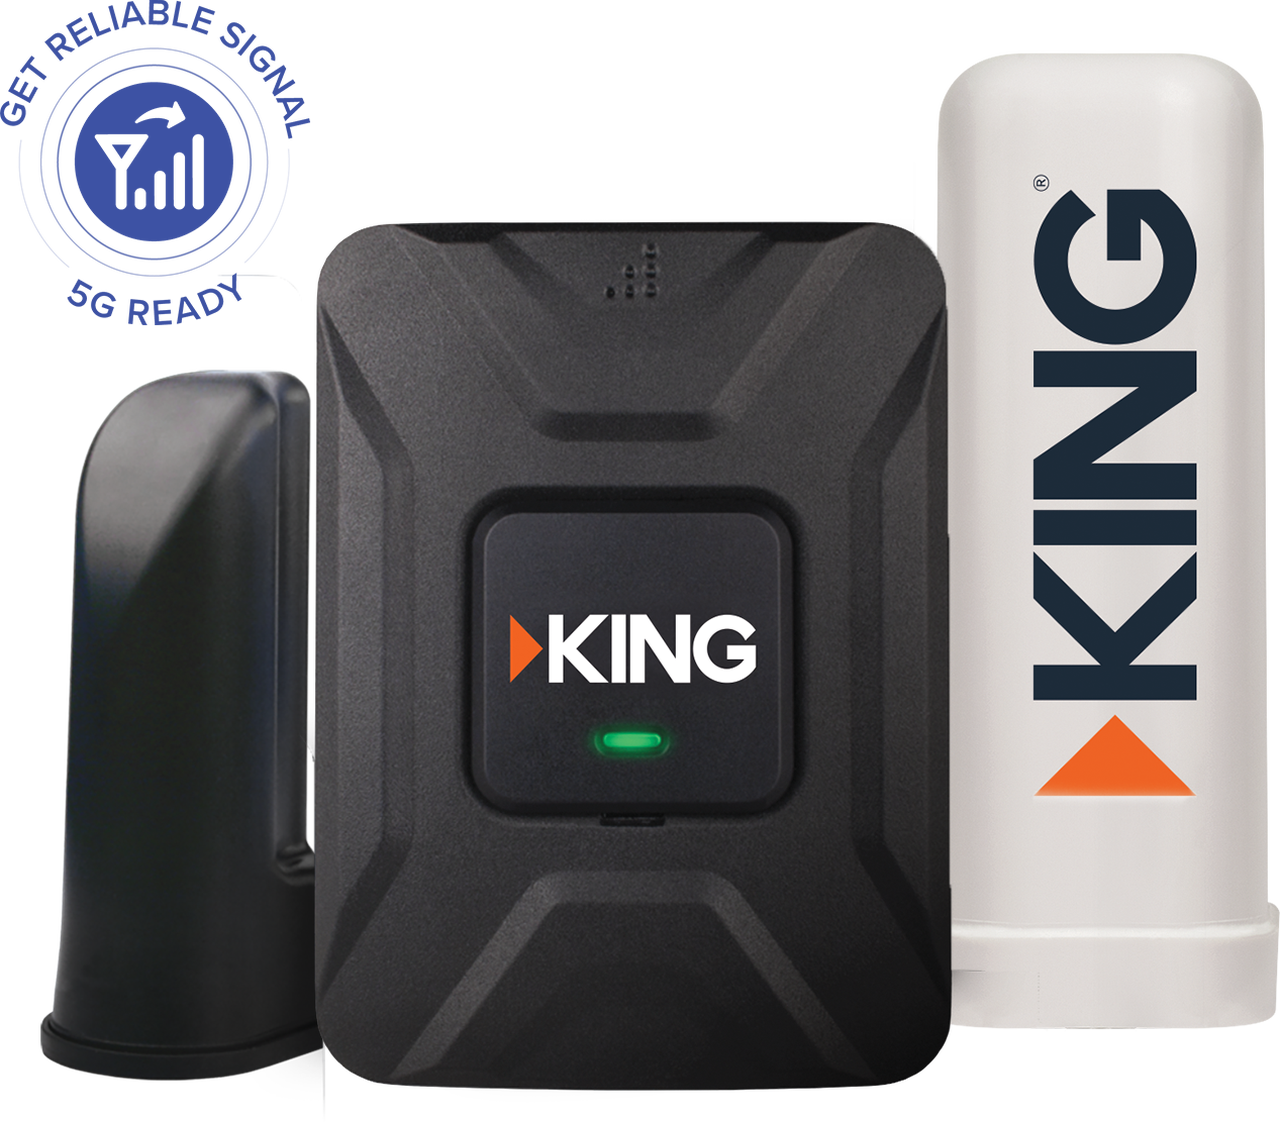 KING Cell Phone Signal Booster for RV, Truck, Home or Car - Cellular Repeater for Verizon, AT&T, Sprint, T-Mobile, All Carriers